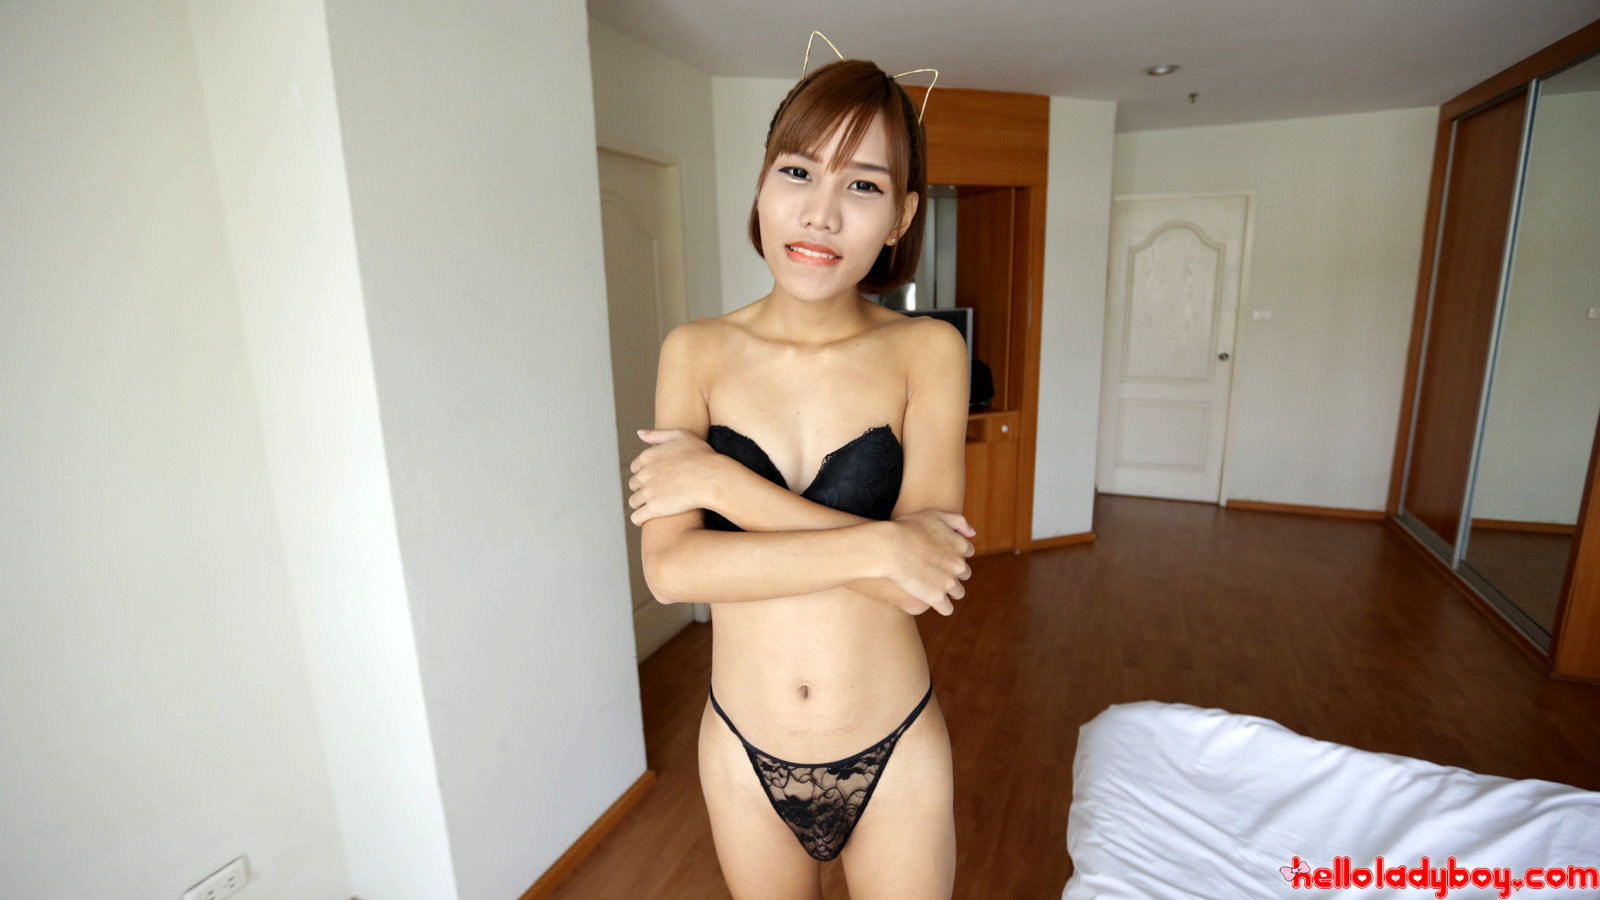 18 Year Old Naughty Asian T-Girl Striptease To Black Lingerie And Raw Penis